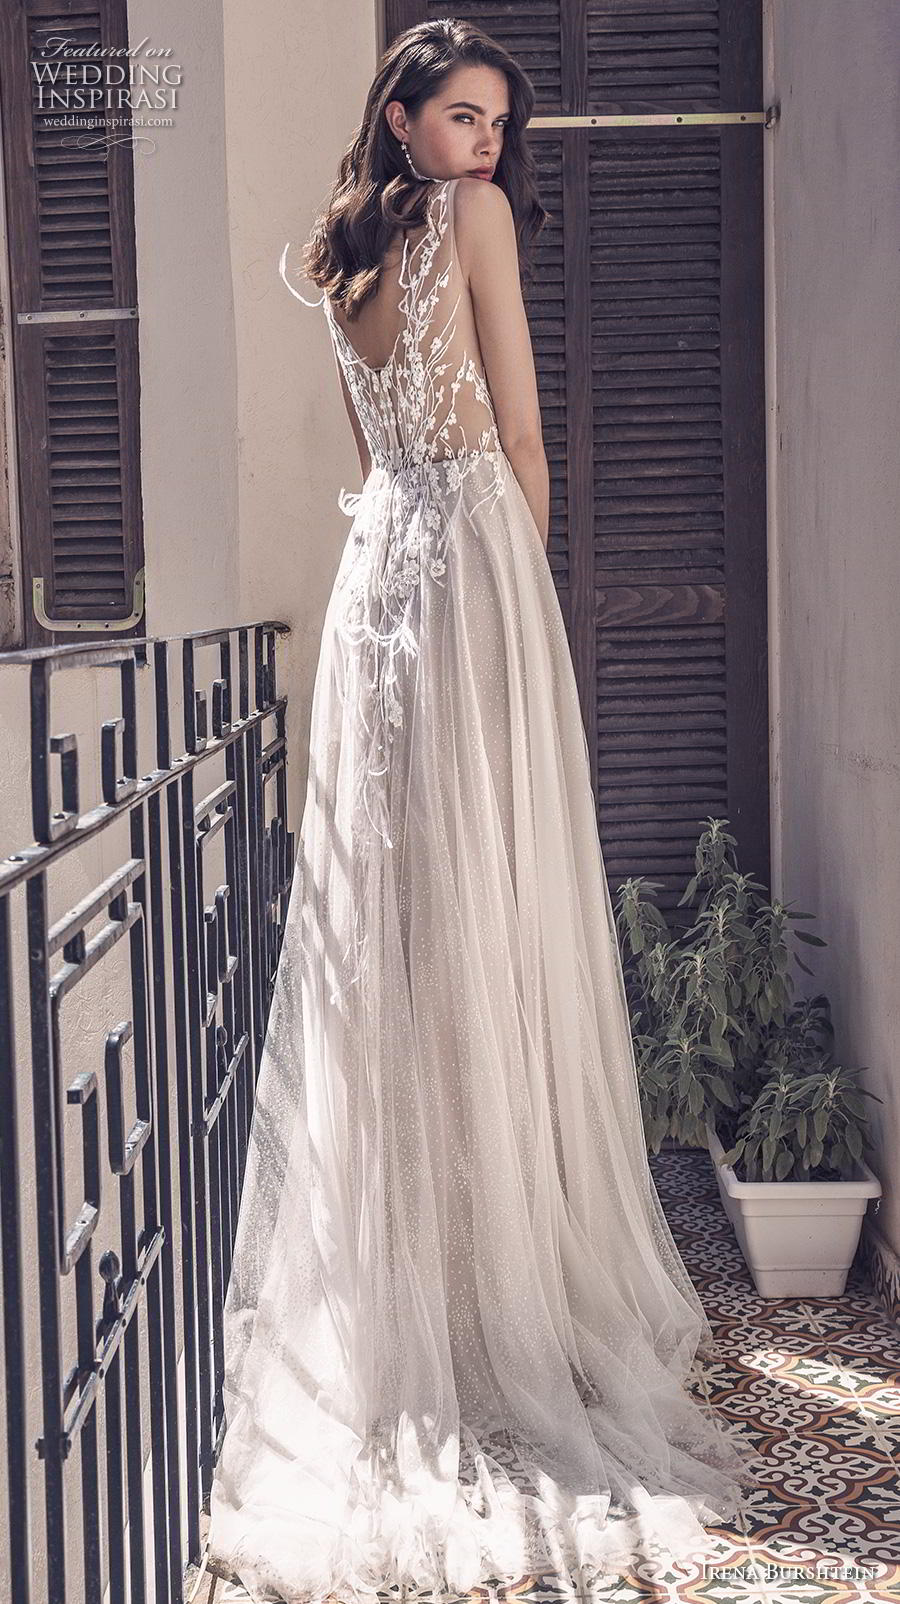 irena burshtein 2020 bridal sleeveless with strap sweetheart neckline heavily embellished bodice romantic modified a  line wedding dress v back medium train (4) bv